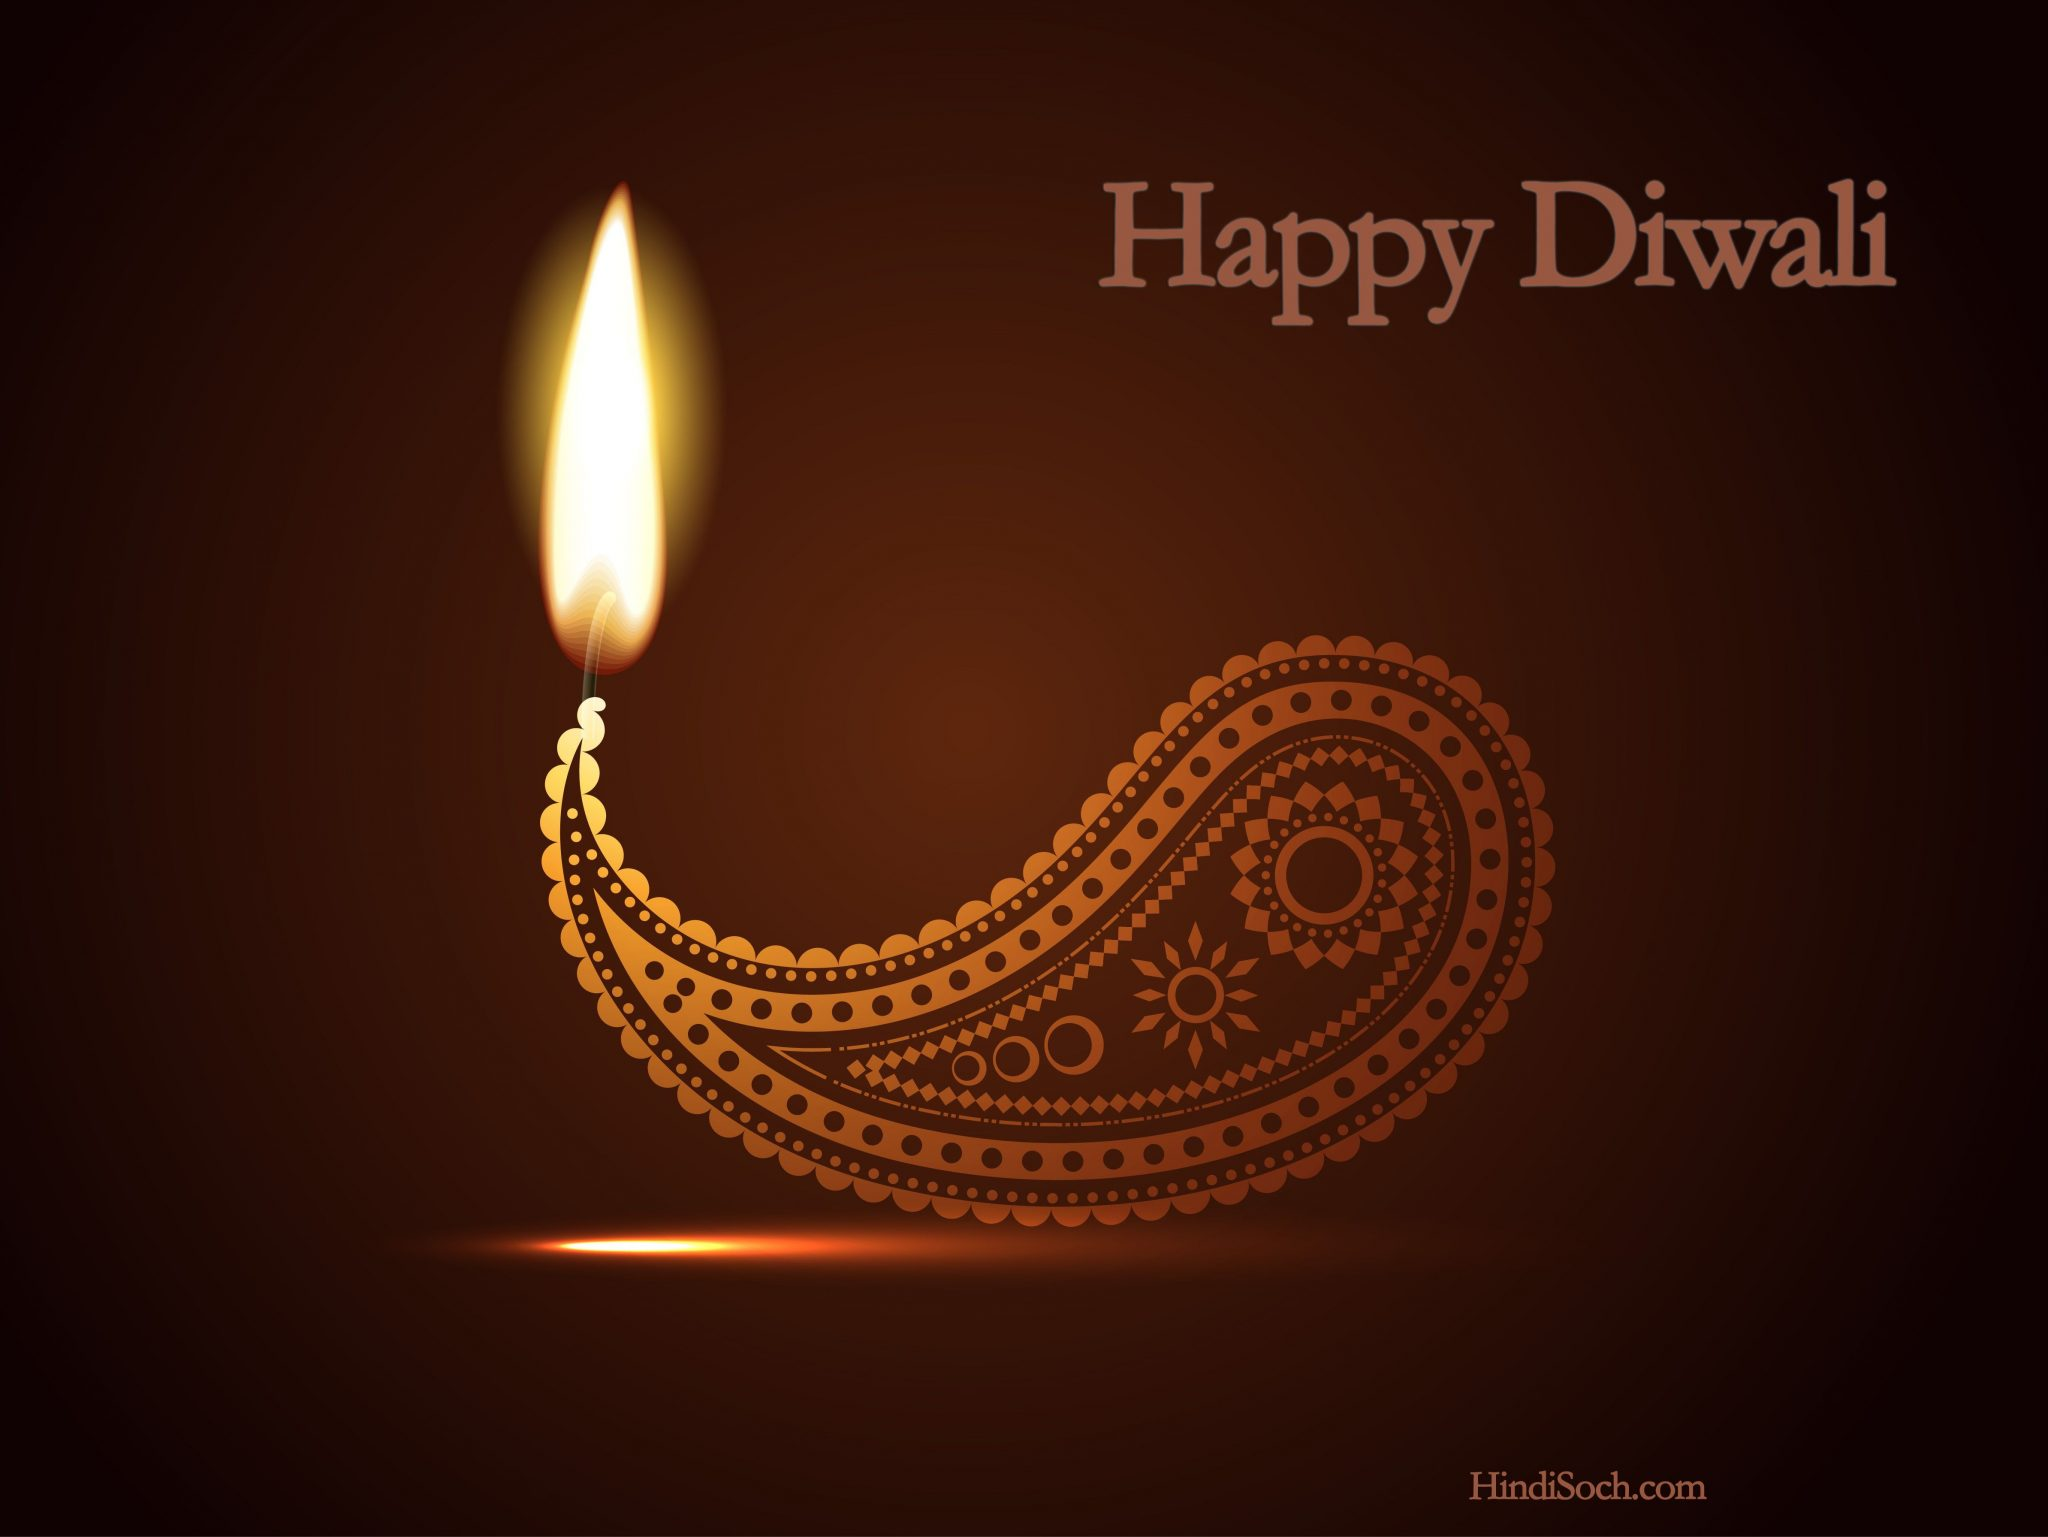 Shubh Diwali Images for Whatsapp